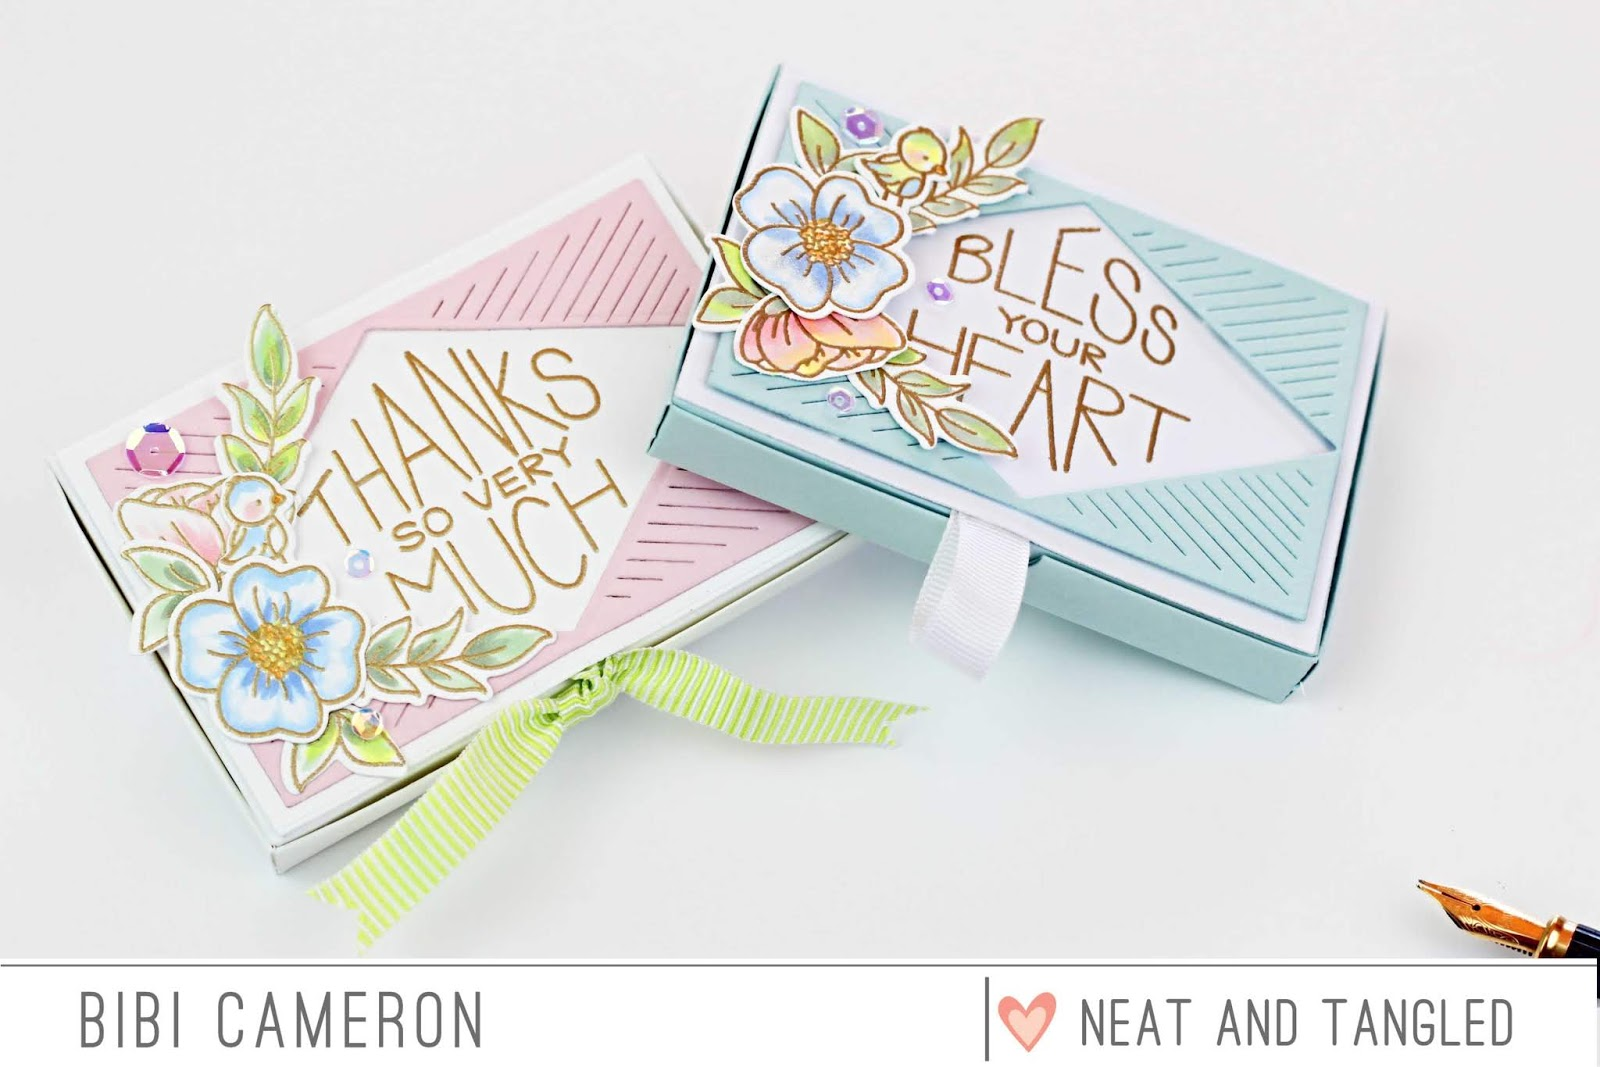 Gift Card Box With Pop Up Card Holder Insert 2 Ways Neat And Tangled